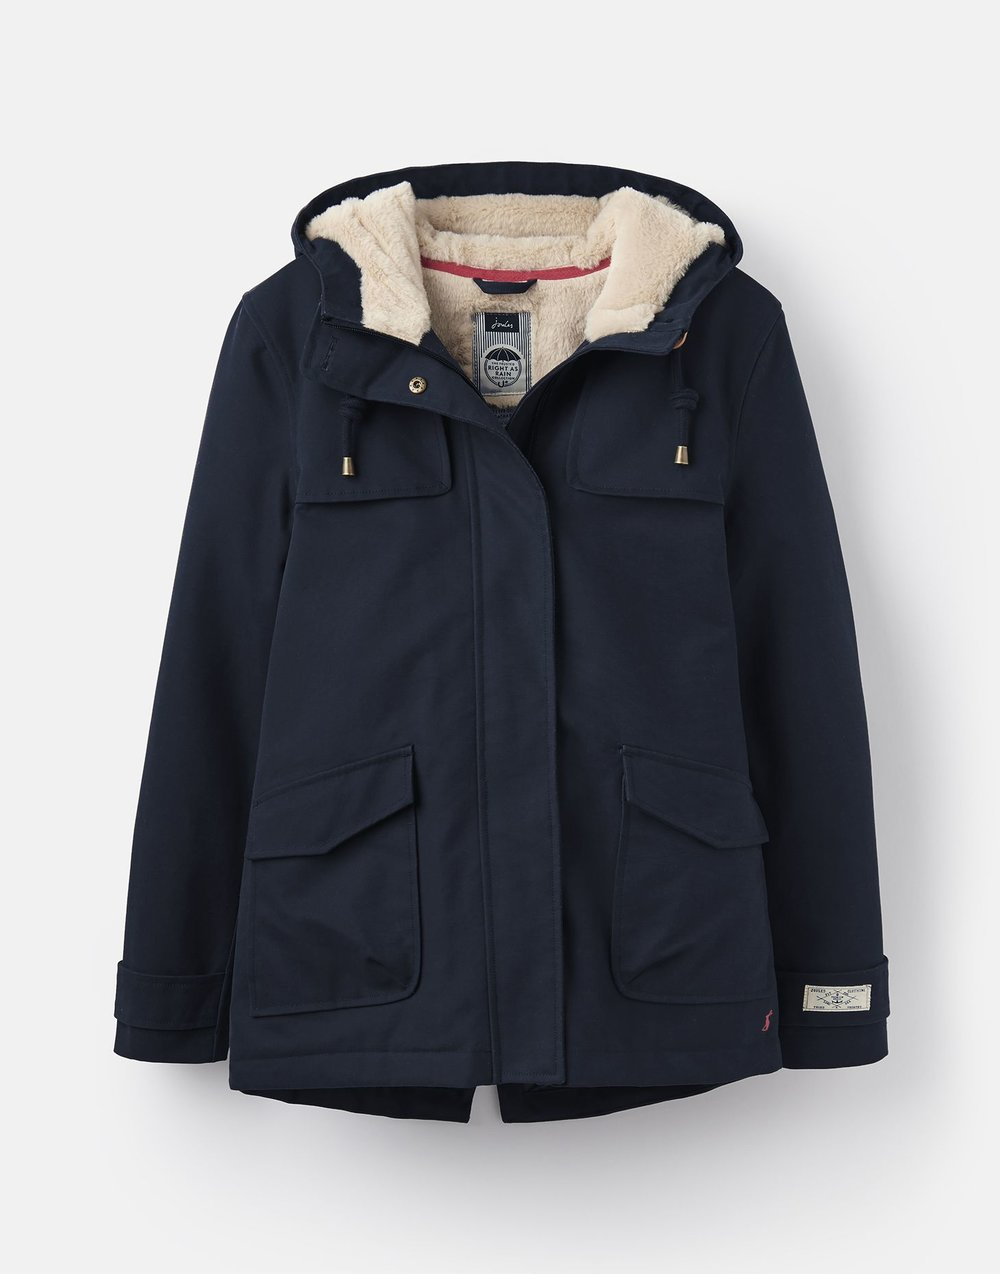 joules coast cosy jacket (gifted) - Although you can wear this coat when it's colder with the right layers underneath for me it's much more of a Spring piece. For when it's really cold I prefer to wear my big puffa coats as they're like wearing a duvet and that's exactly what I want when it's ice cold outside. Anyway, I absolutely love this jacket as it's not only incredibly practical but it looks pretty smart too which isn't something you usually get when it comes to practical outerwear. I'm hoping that a jacket isn't something that I will need that much in the warmer months but let's be real, I live in the UK and you never want to be fair away from a raincoat. I can't say I've tested out how waterproof this coat is as the dogs will not even entertain the idea of going out in the rain but I can say it's so breathable which is so much more important than I ever gave it credit for. I love to pair this jacket with items such as;-a striped breton-thin and chunky knits-jumper dresses-sweatshirts